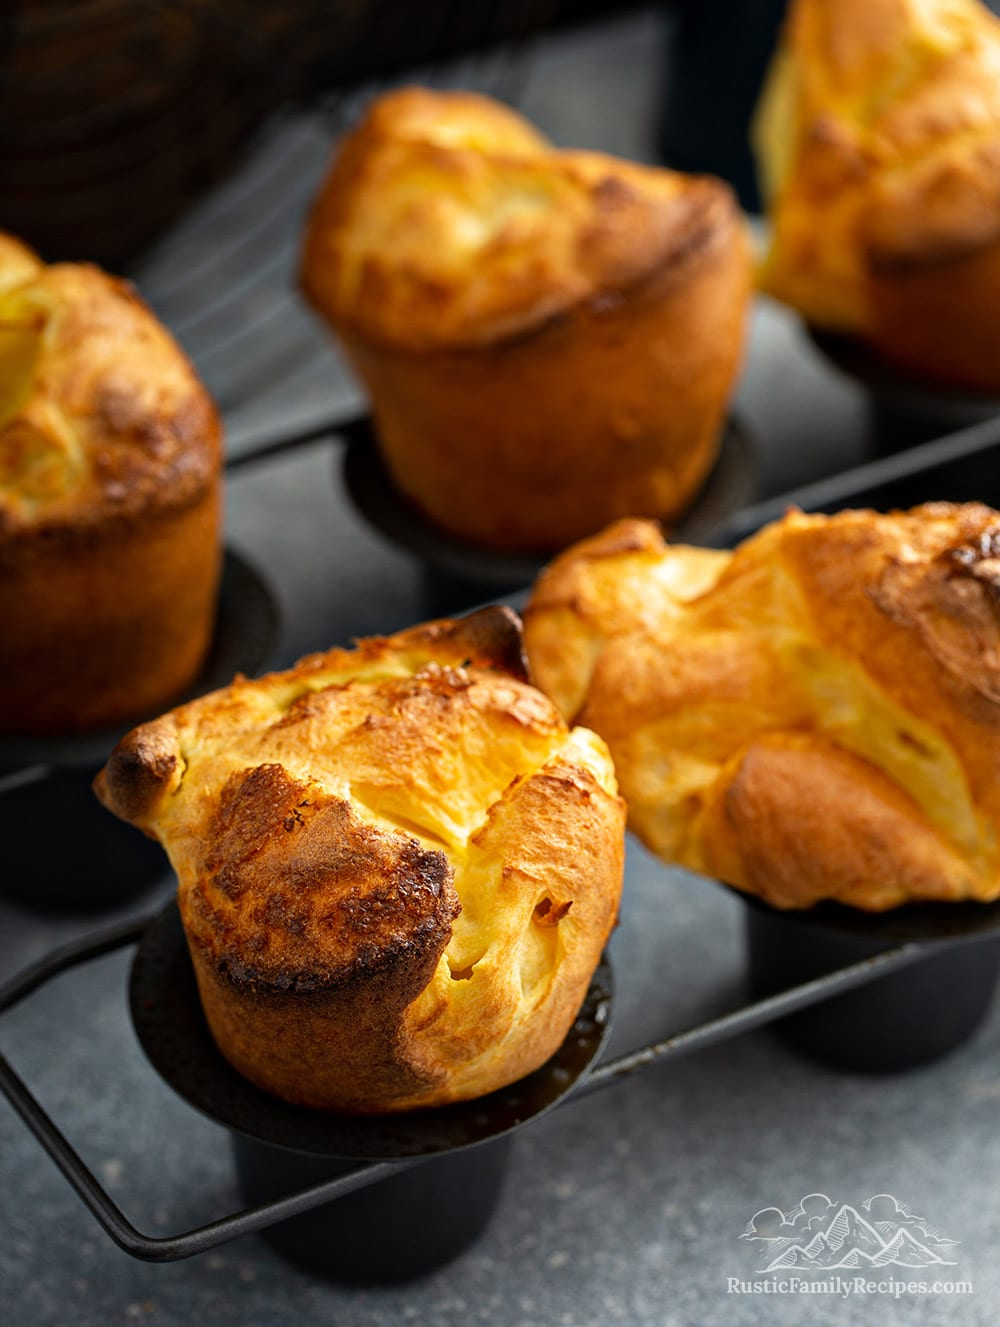 Homemade popovers in a popover pan.